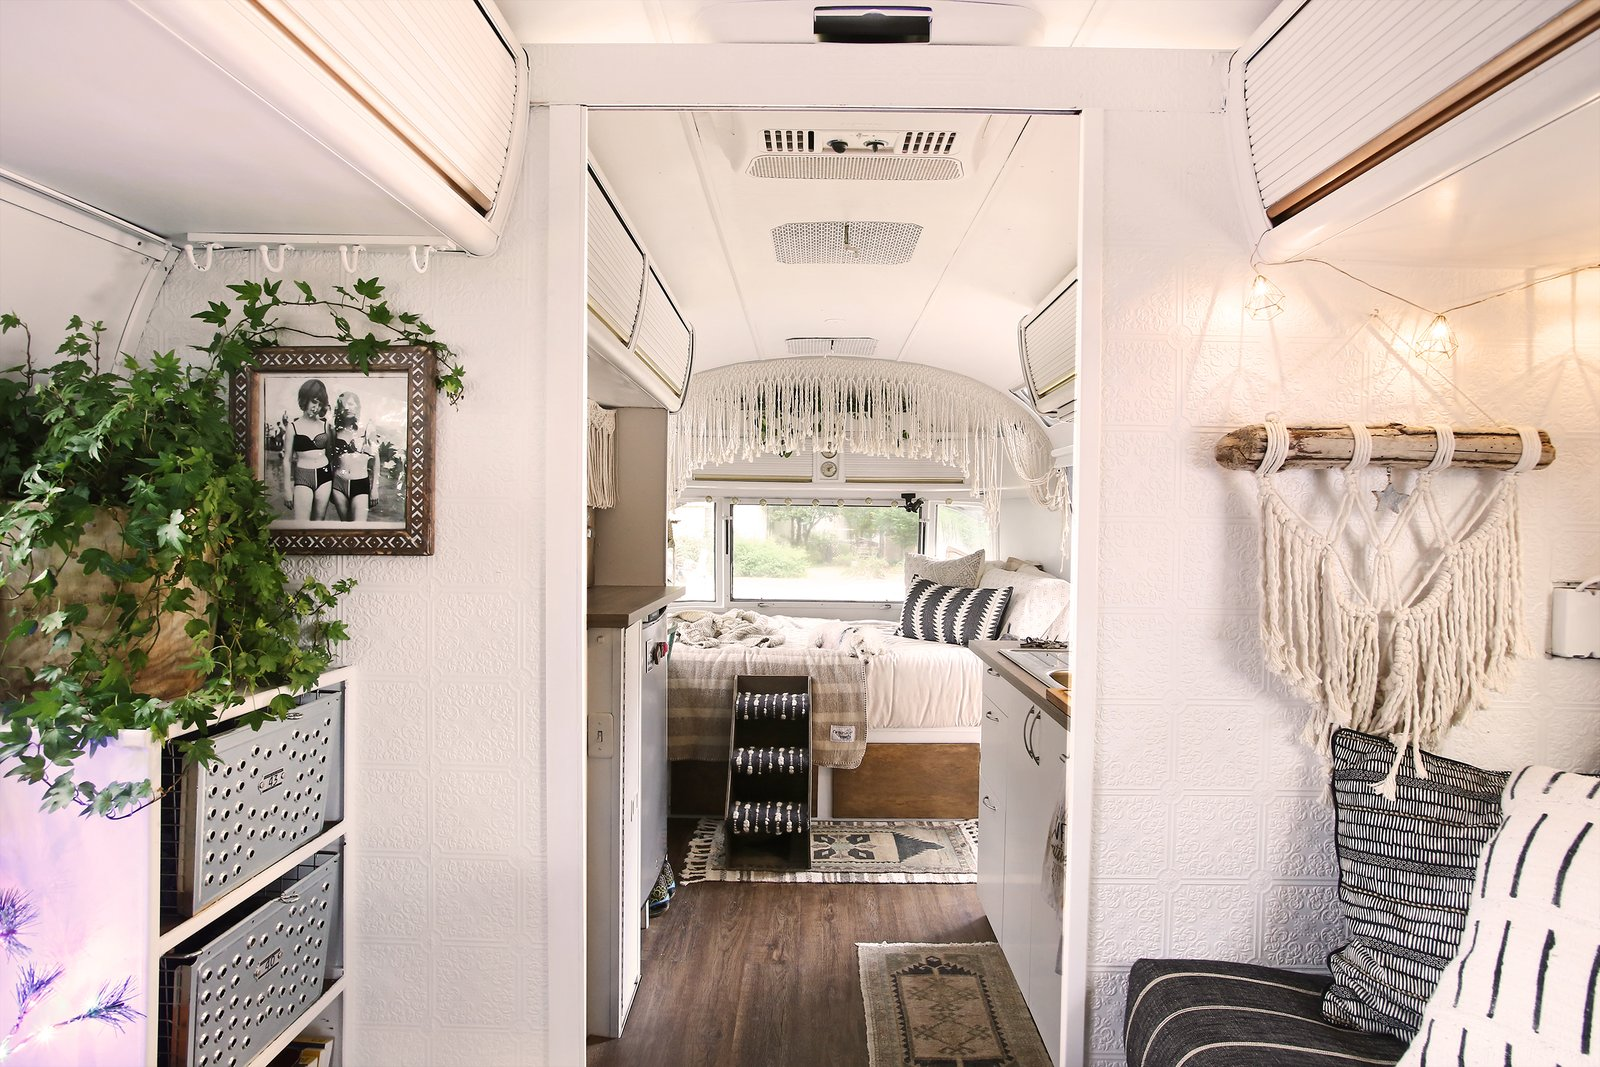 Living, Accent, Sofa, Rug, Dark Hardwood, and Storage To make the space feel larger, the couple opted for white walls and a minimal color palette.  Best Living Dark Hardwood Accent Photos from Before & After: A Couple Revamp an Old Airstream Into a Charming Workspace and Home